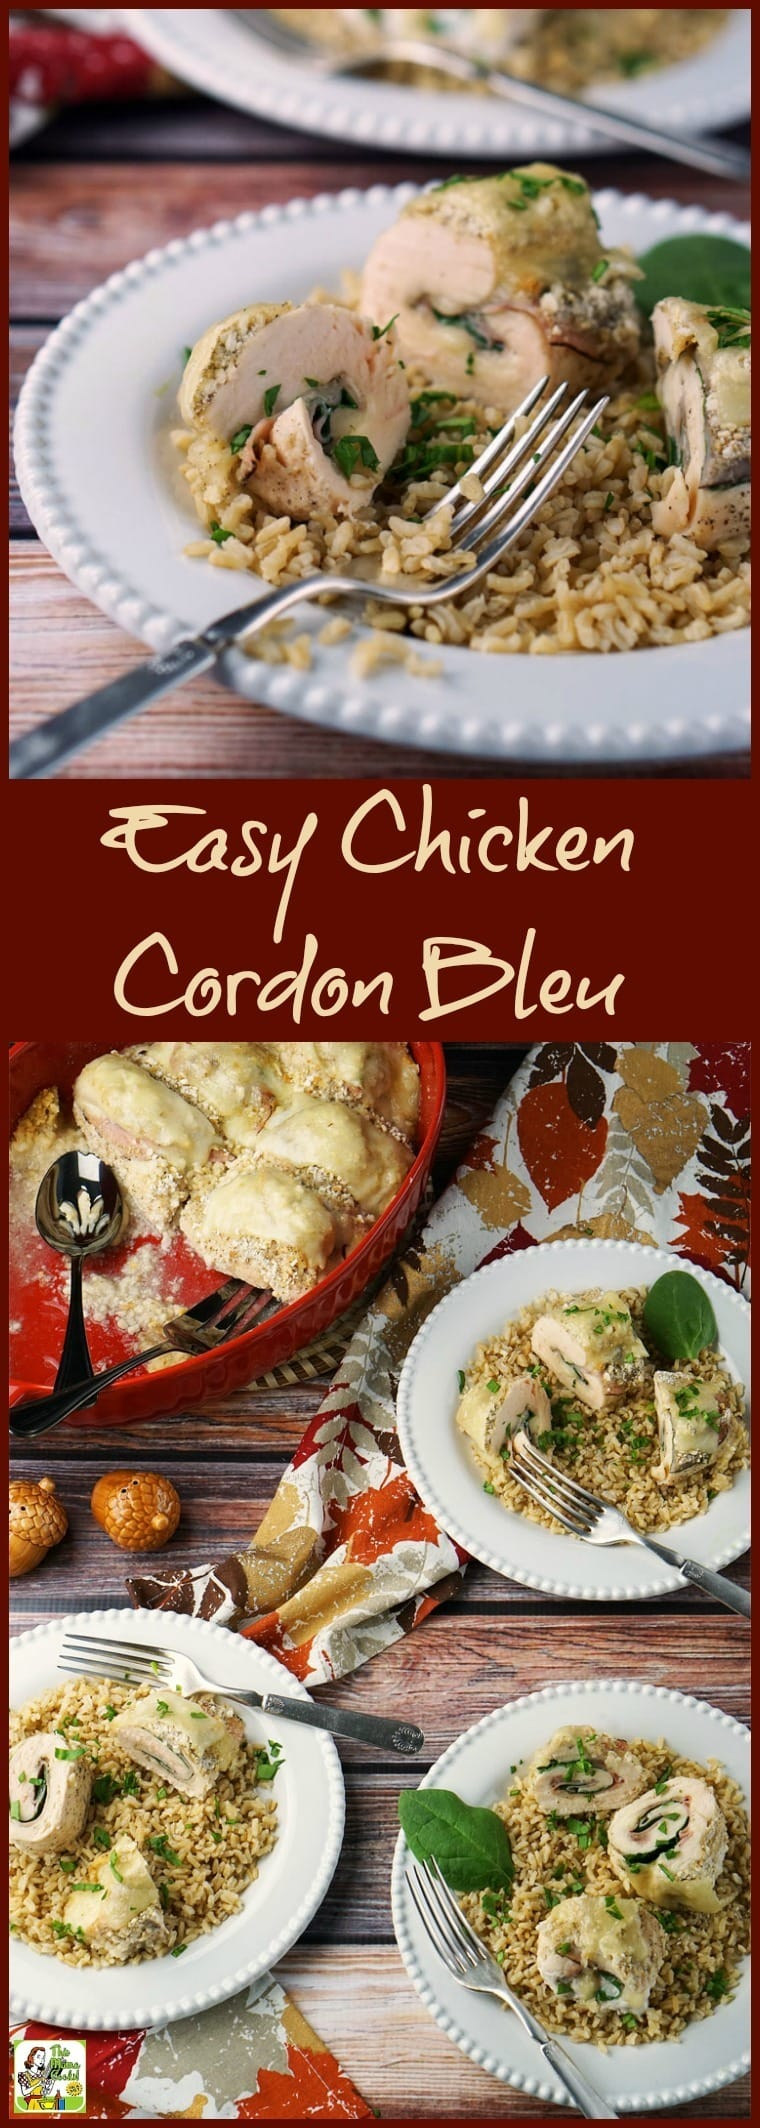 Making this Easy Chicken Cordon Bleu is quicker than you think! This easy one pot chicken recipe can be made gluten free. Click to get this easy chicken weeknight dinner recipe.